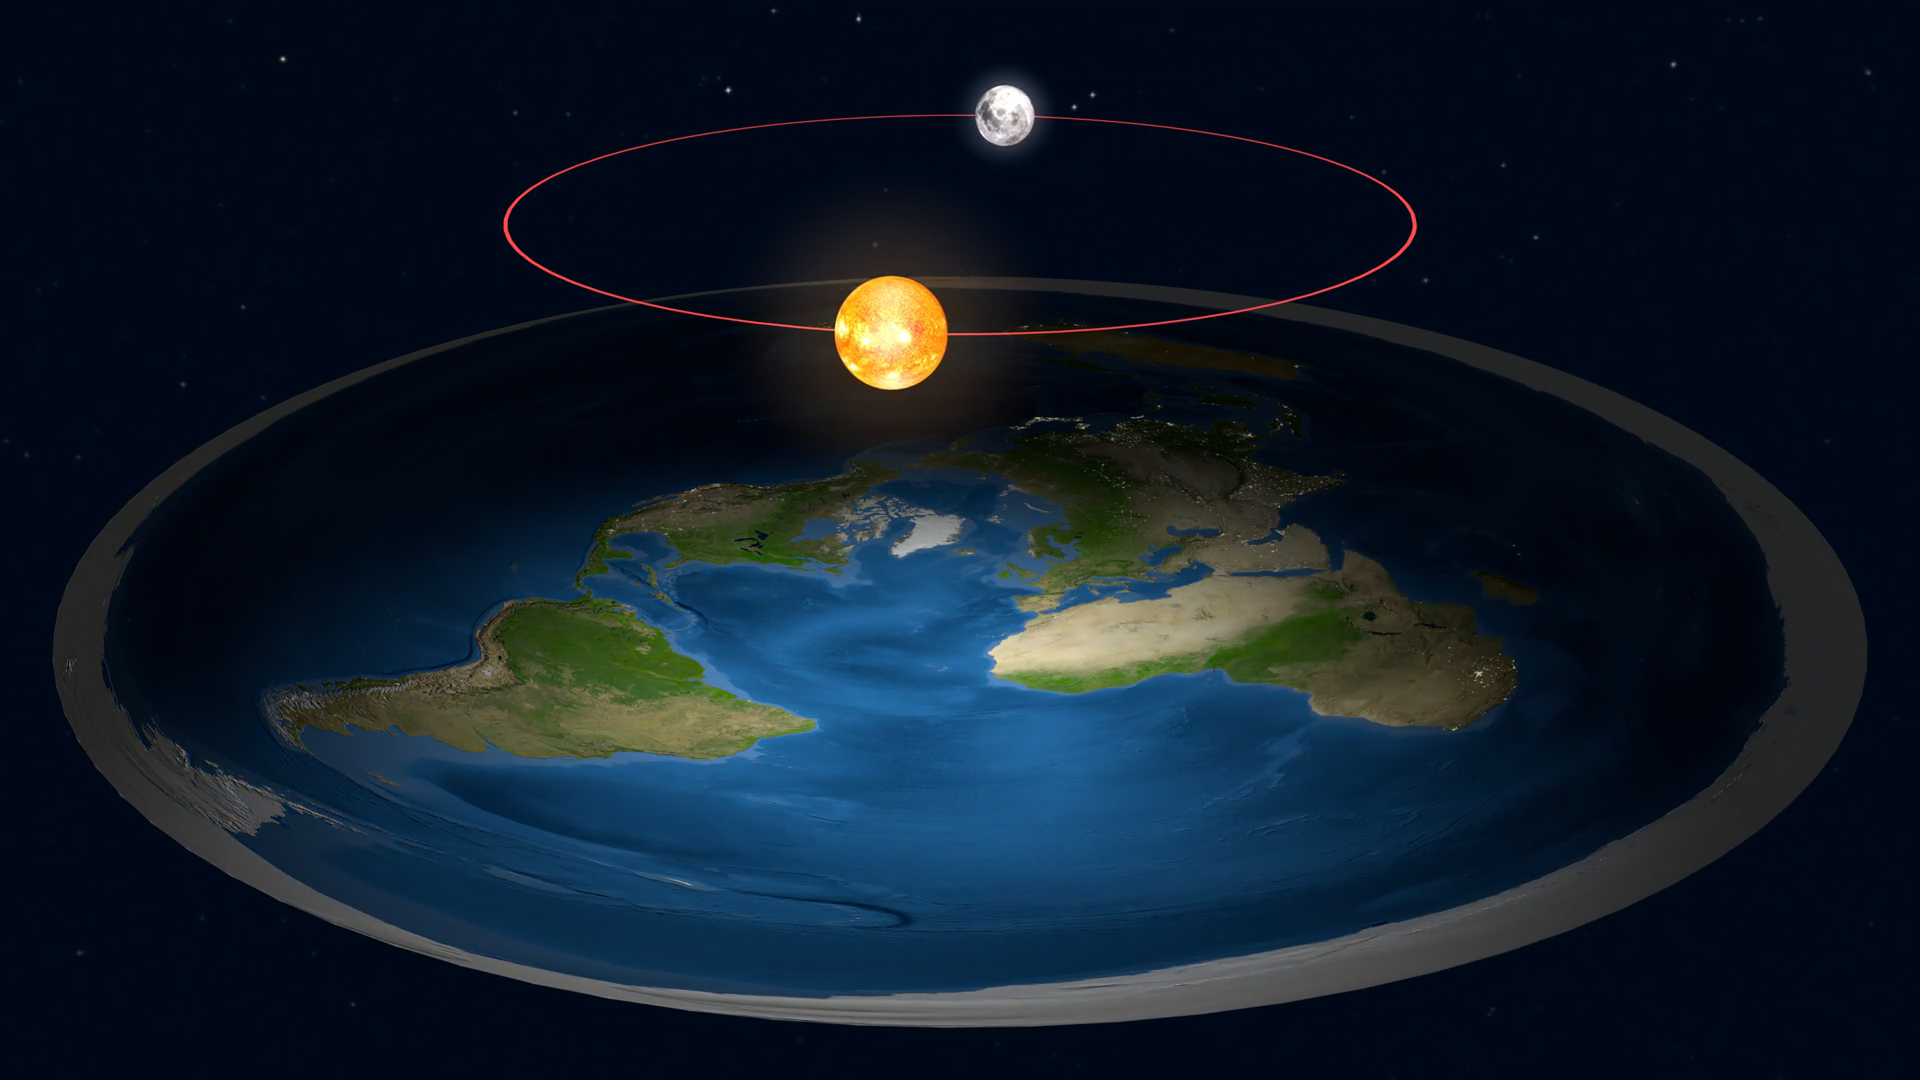 zoom-out-and-revolution-camera-rotation-around-flat-earth-3d-model-geocentric-concept-of-universe-satellite-map-without-clouds-layer-side-.png